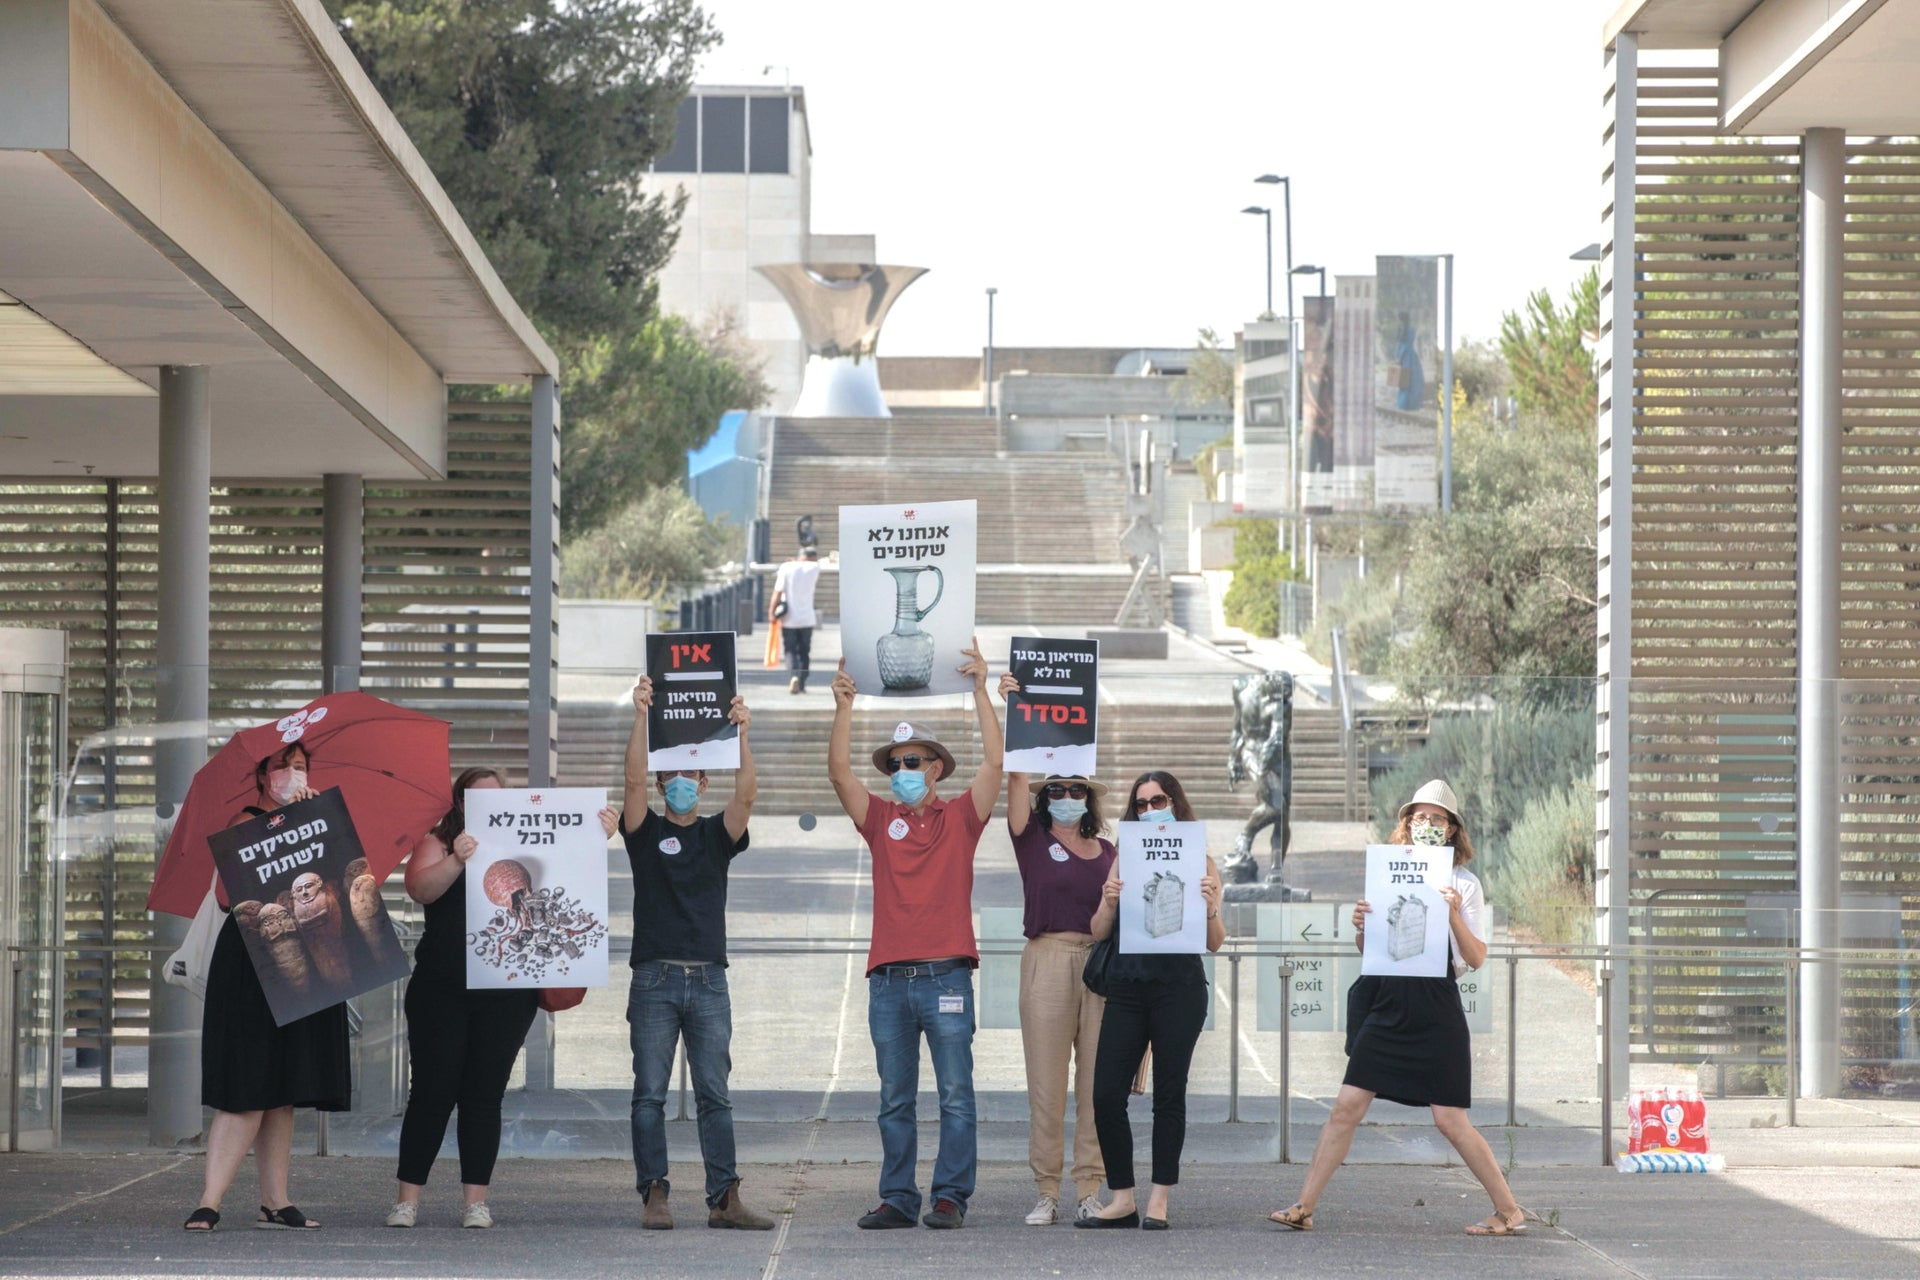 Furloughed staff from the Israel Museum in Jerusalem protesting management's foot-dragging regarding their jobs, July 28, 2020